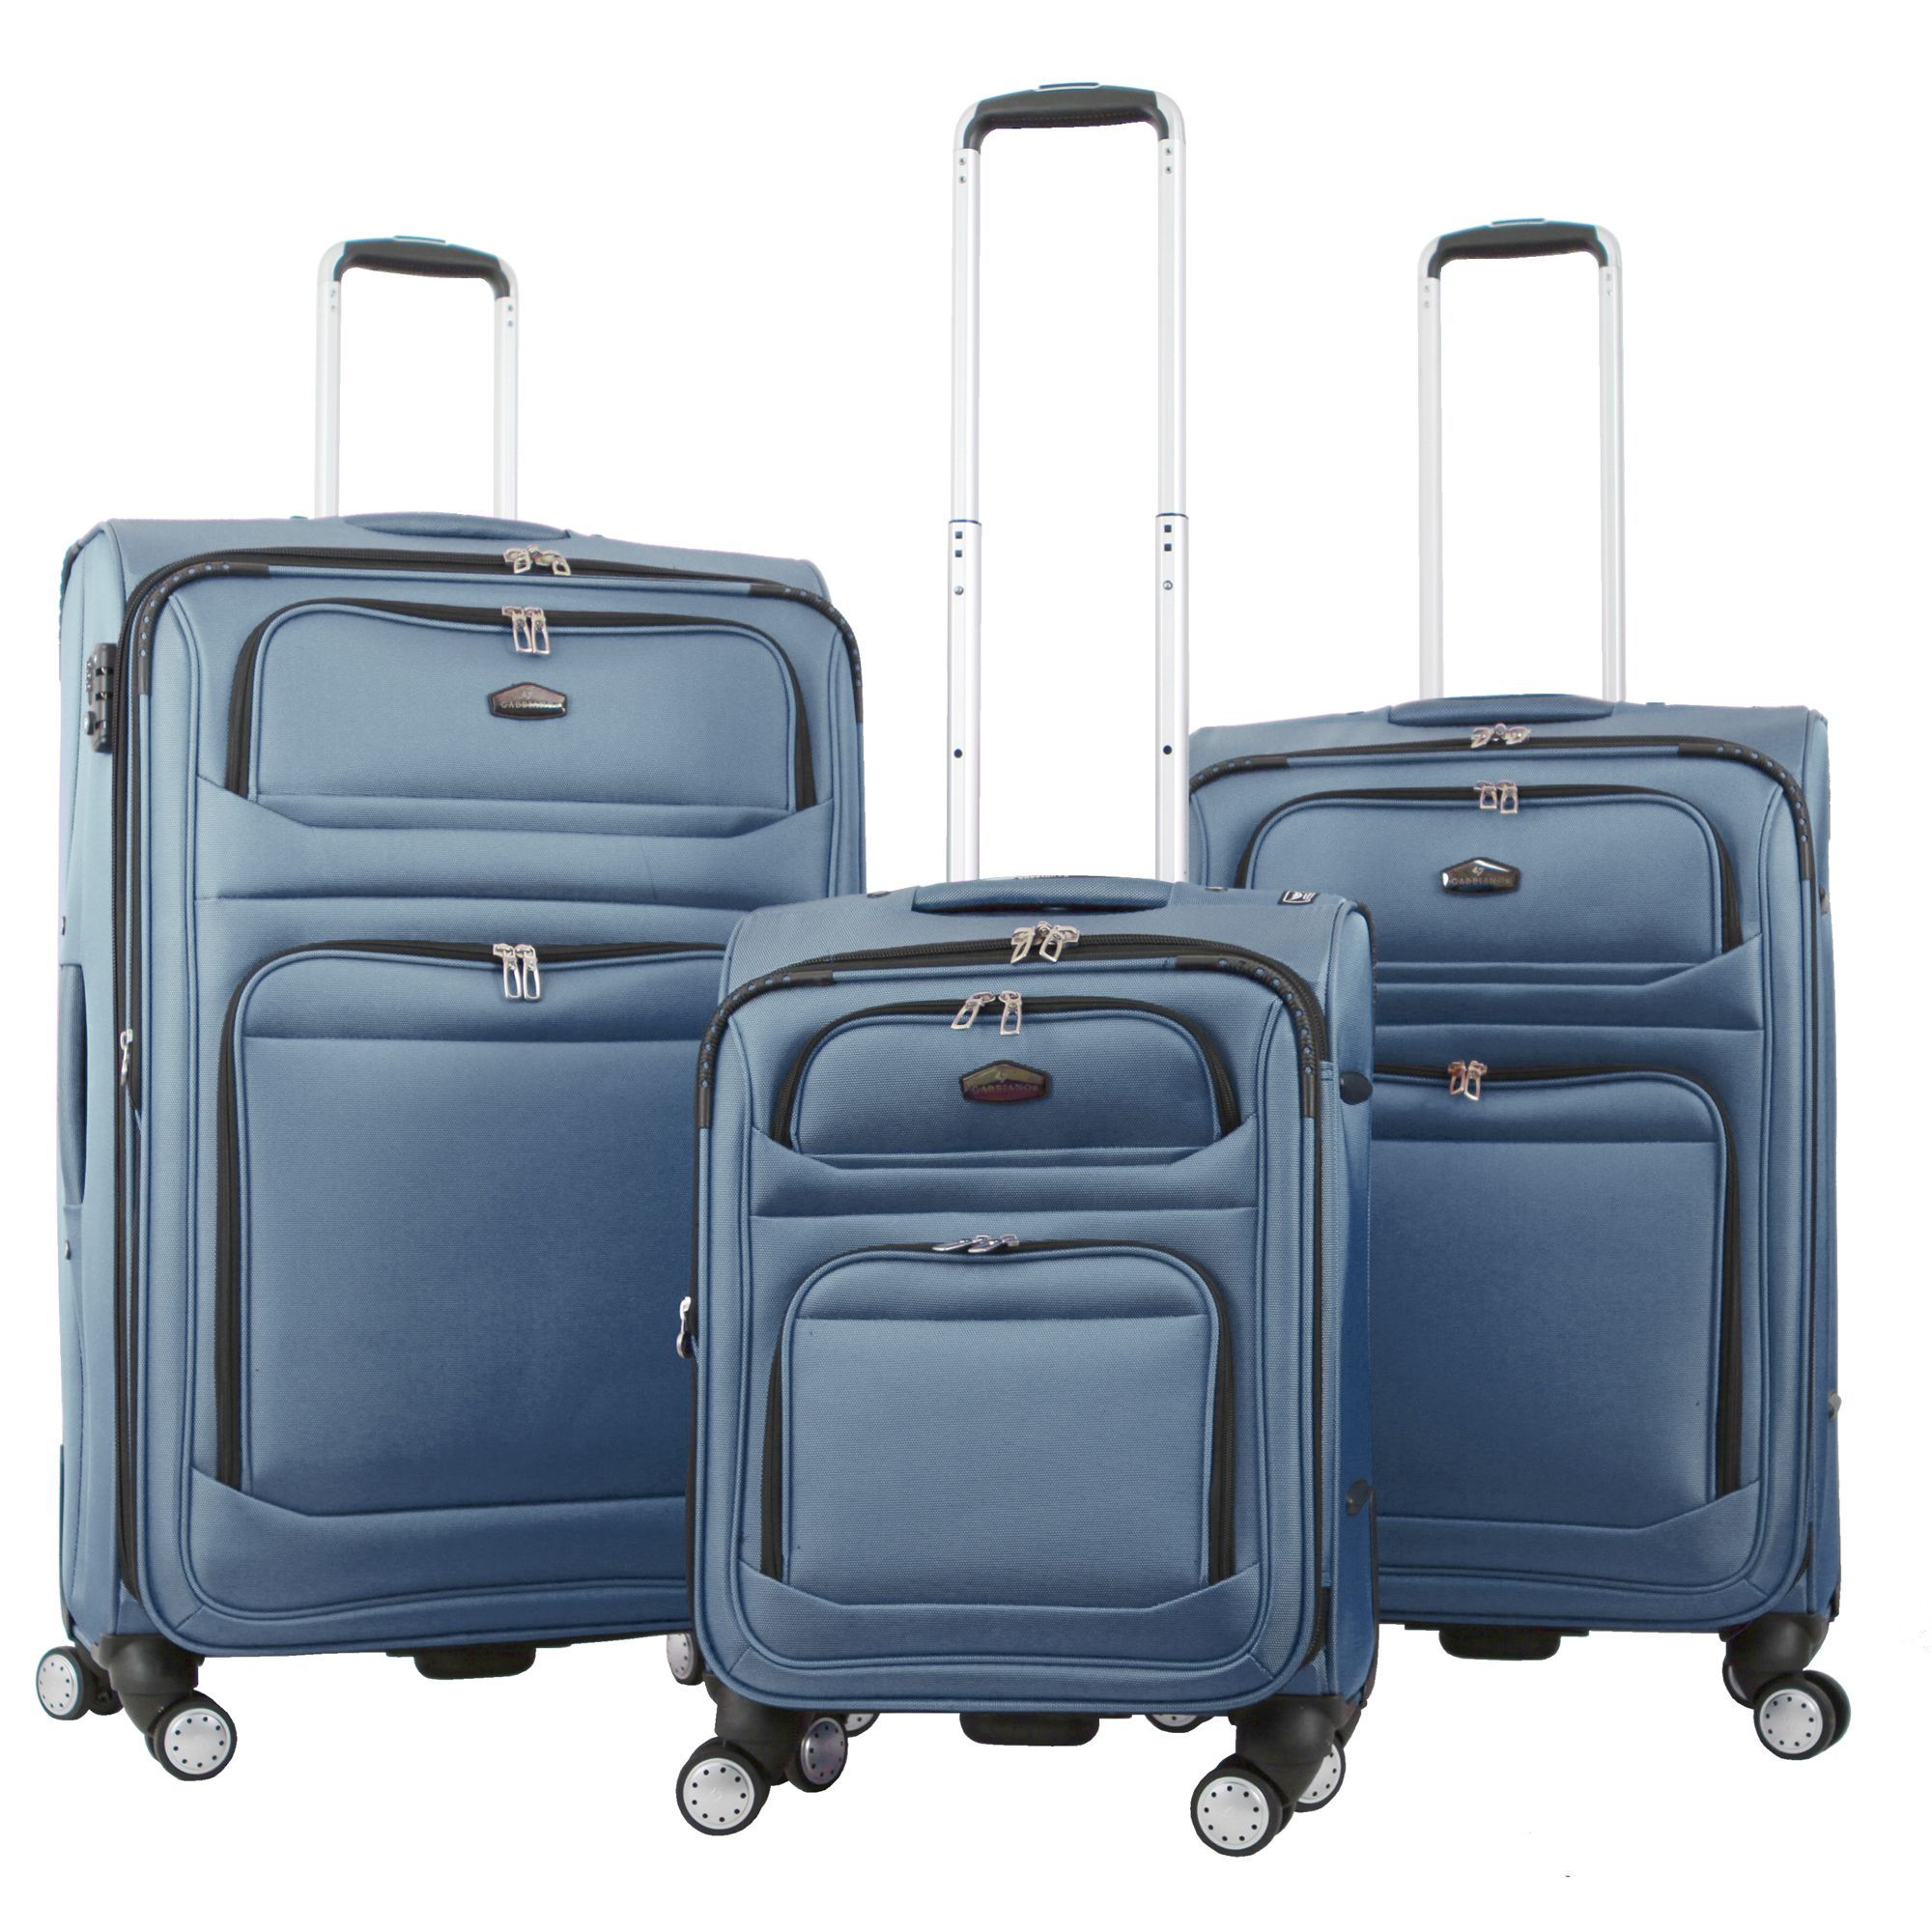 07a8f802c Gabbiano Valencia 3-piece Expandable Spinner Luggage Set | Products ...